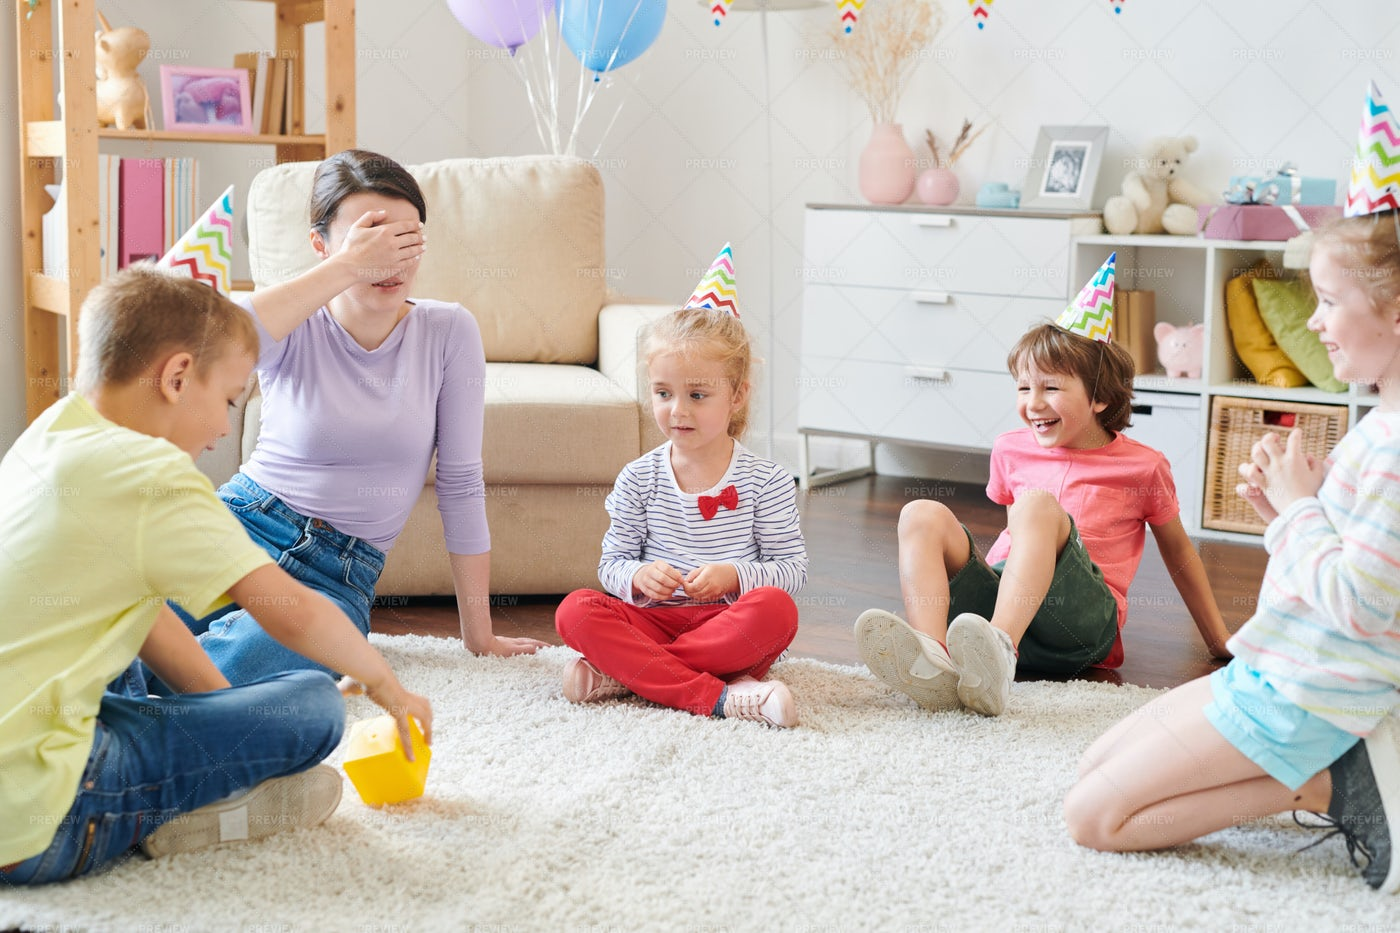 Woman Playing With Kids: Stock Photos